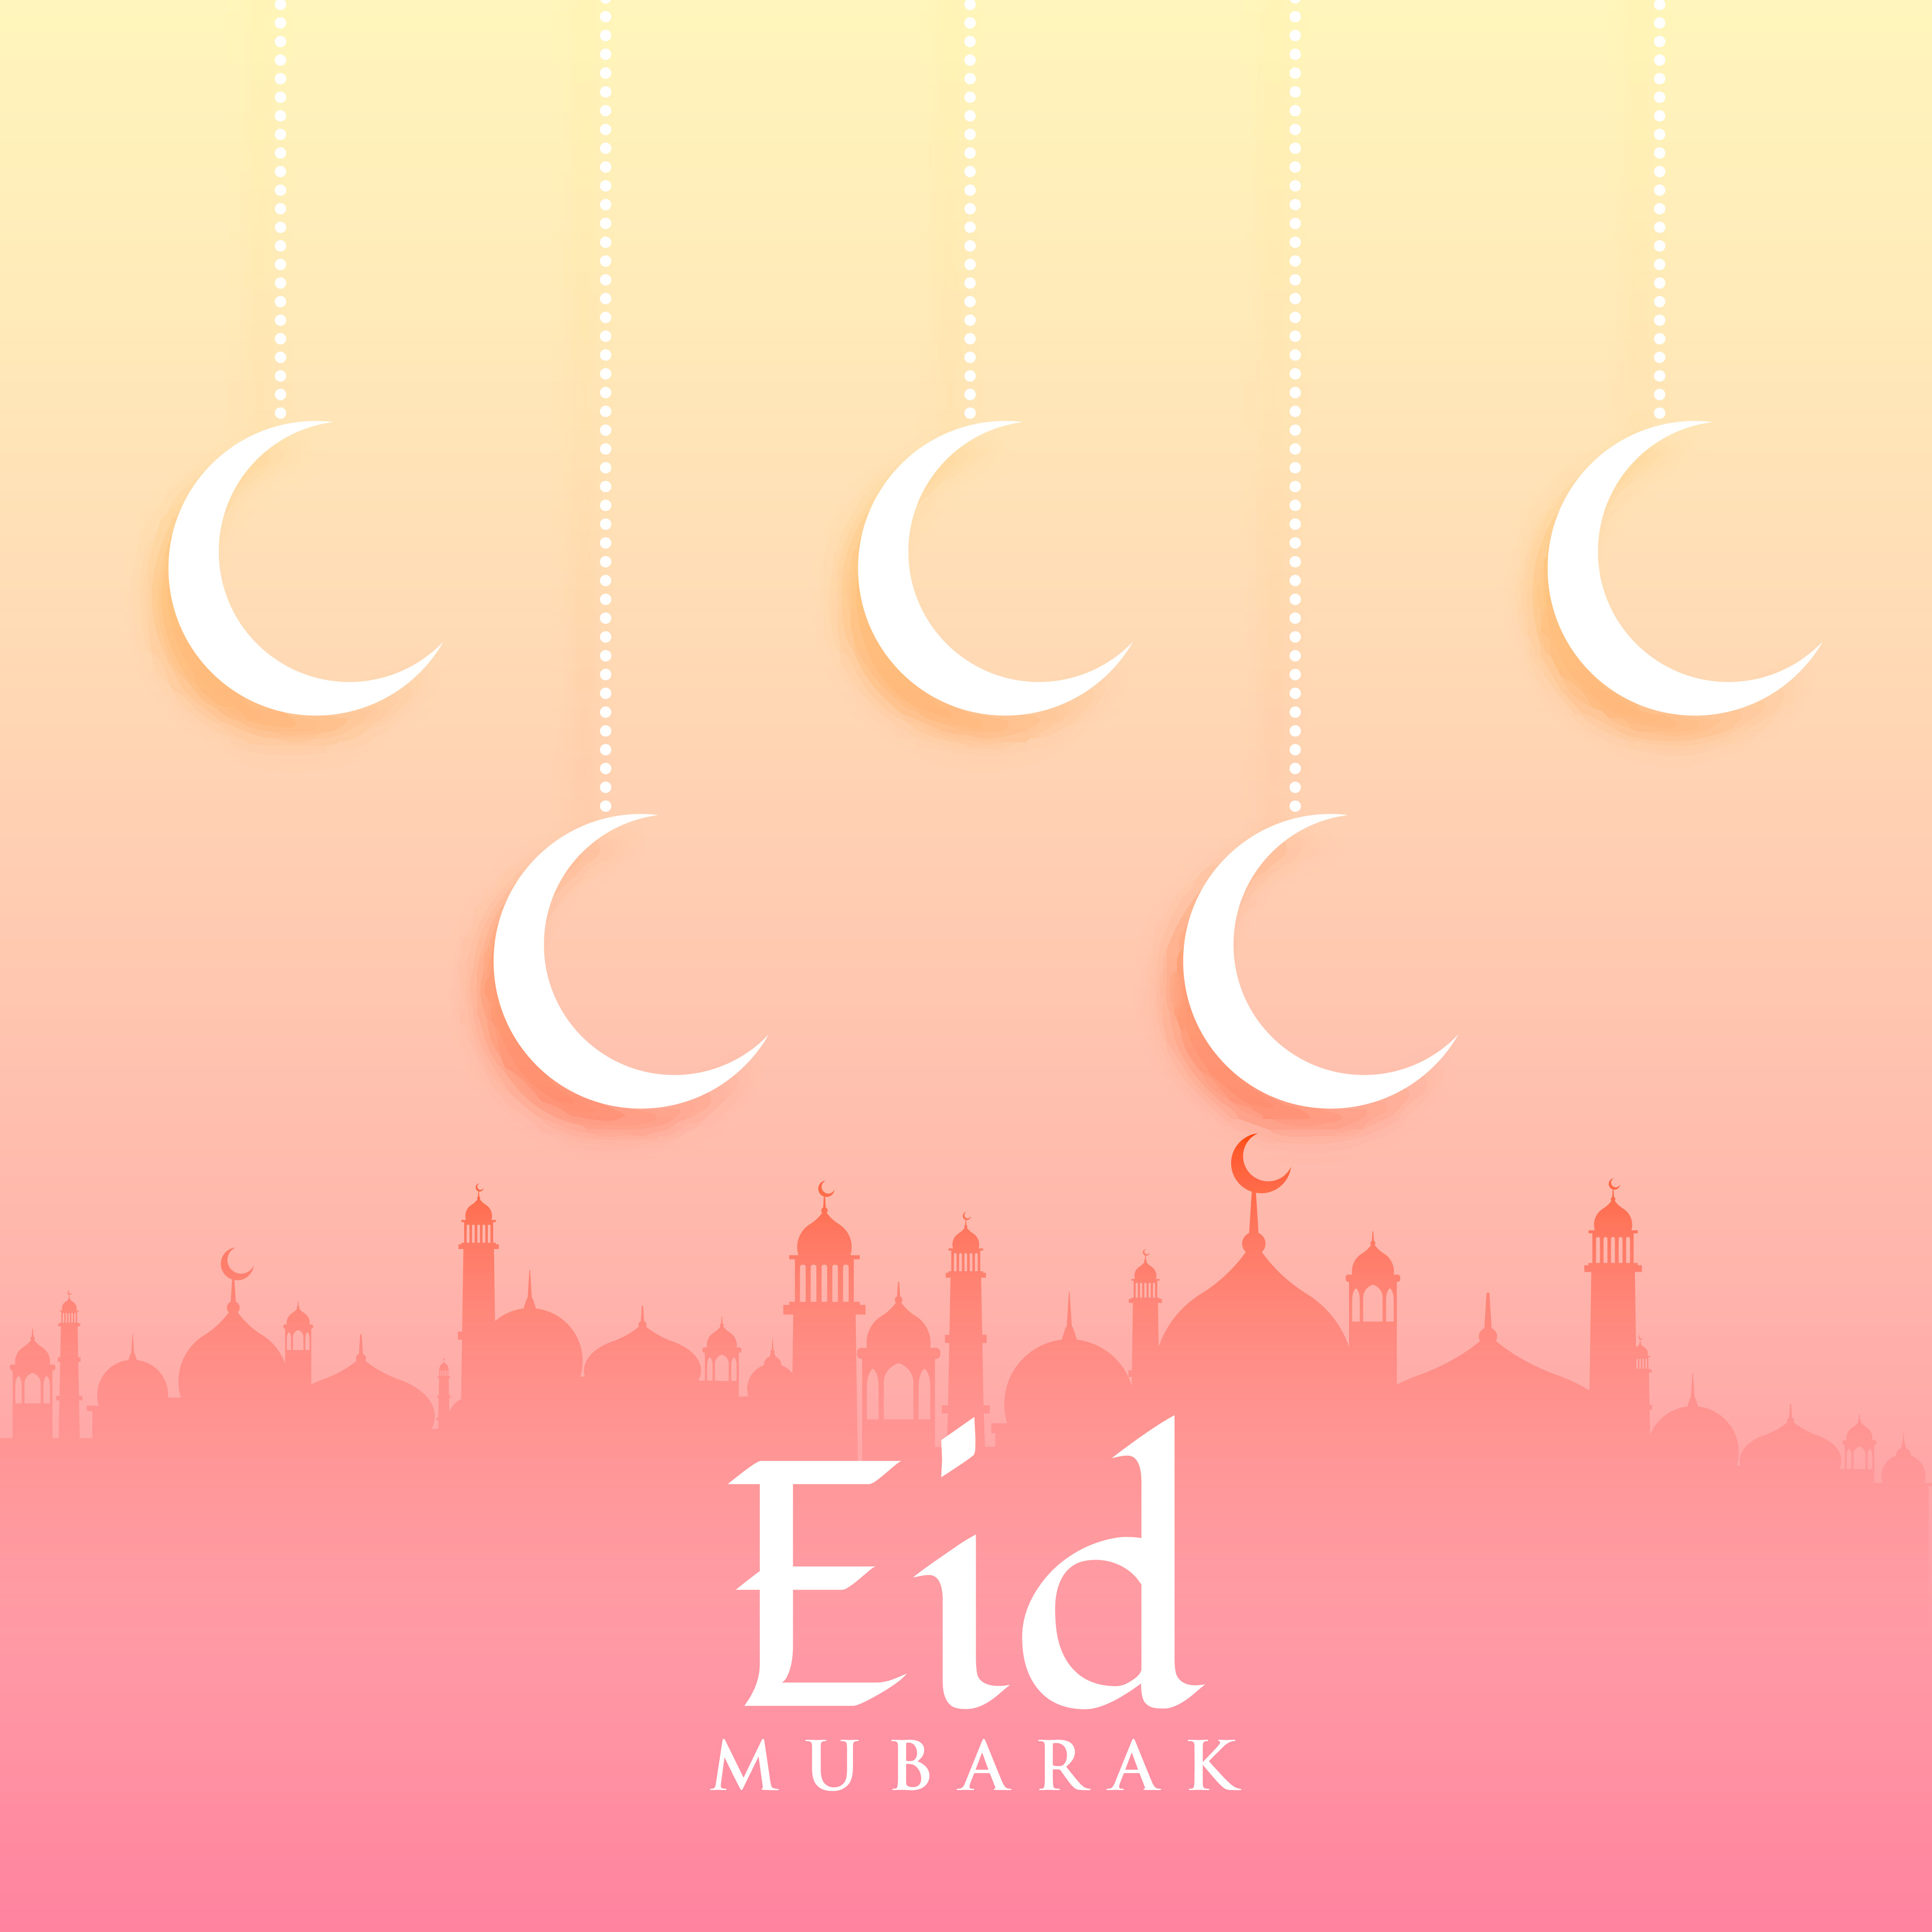 Eid Mubarak Greeting Card Design With Moon And Mosque Download